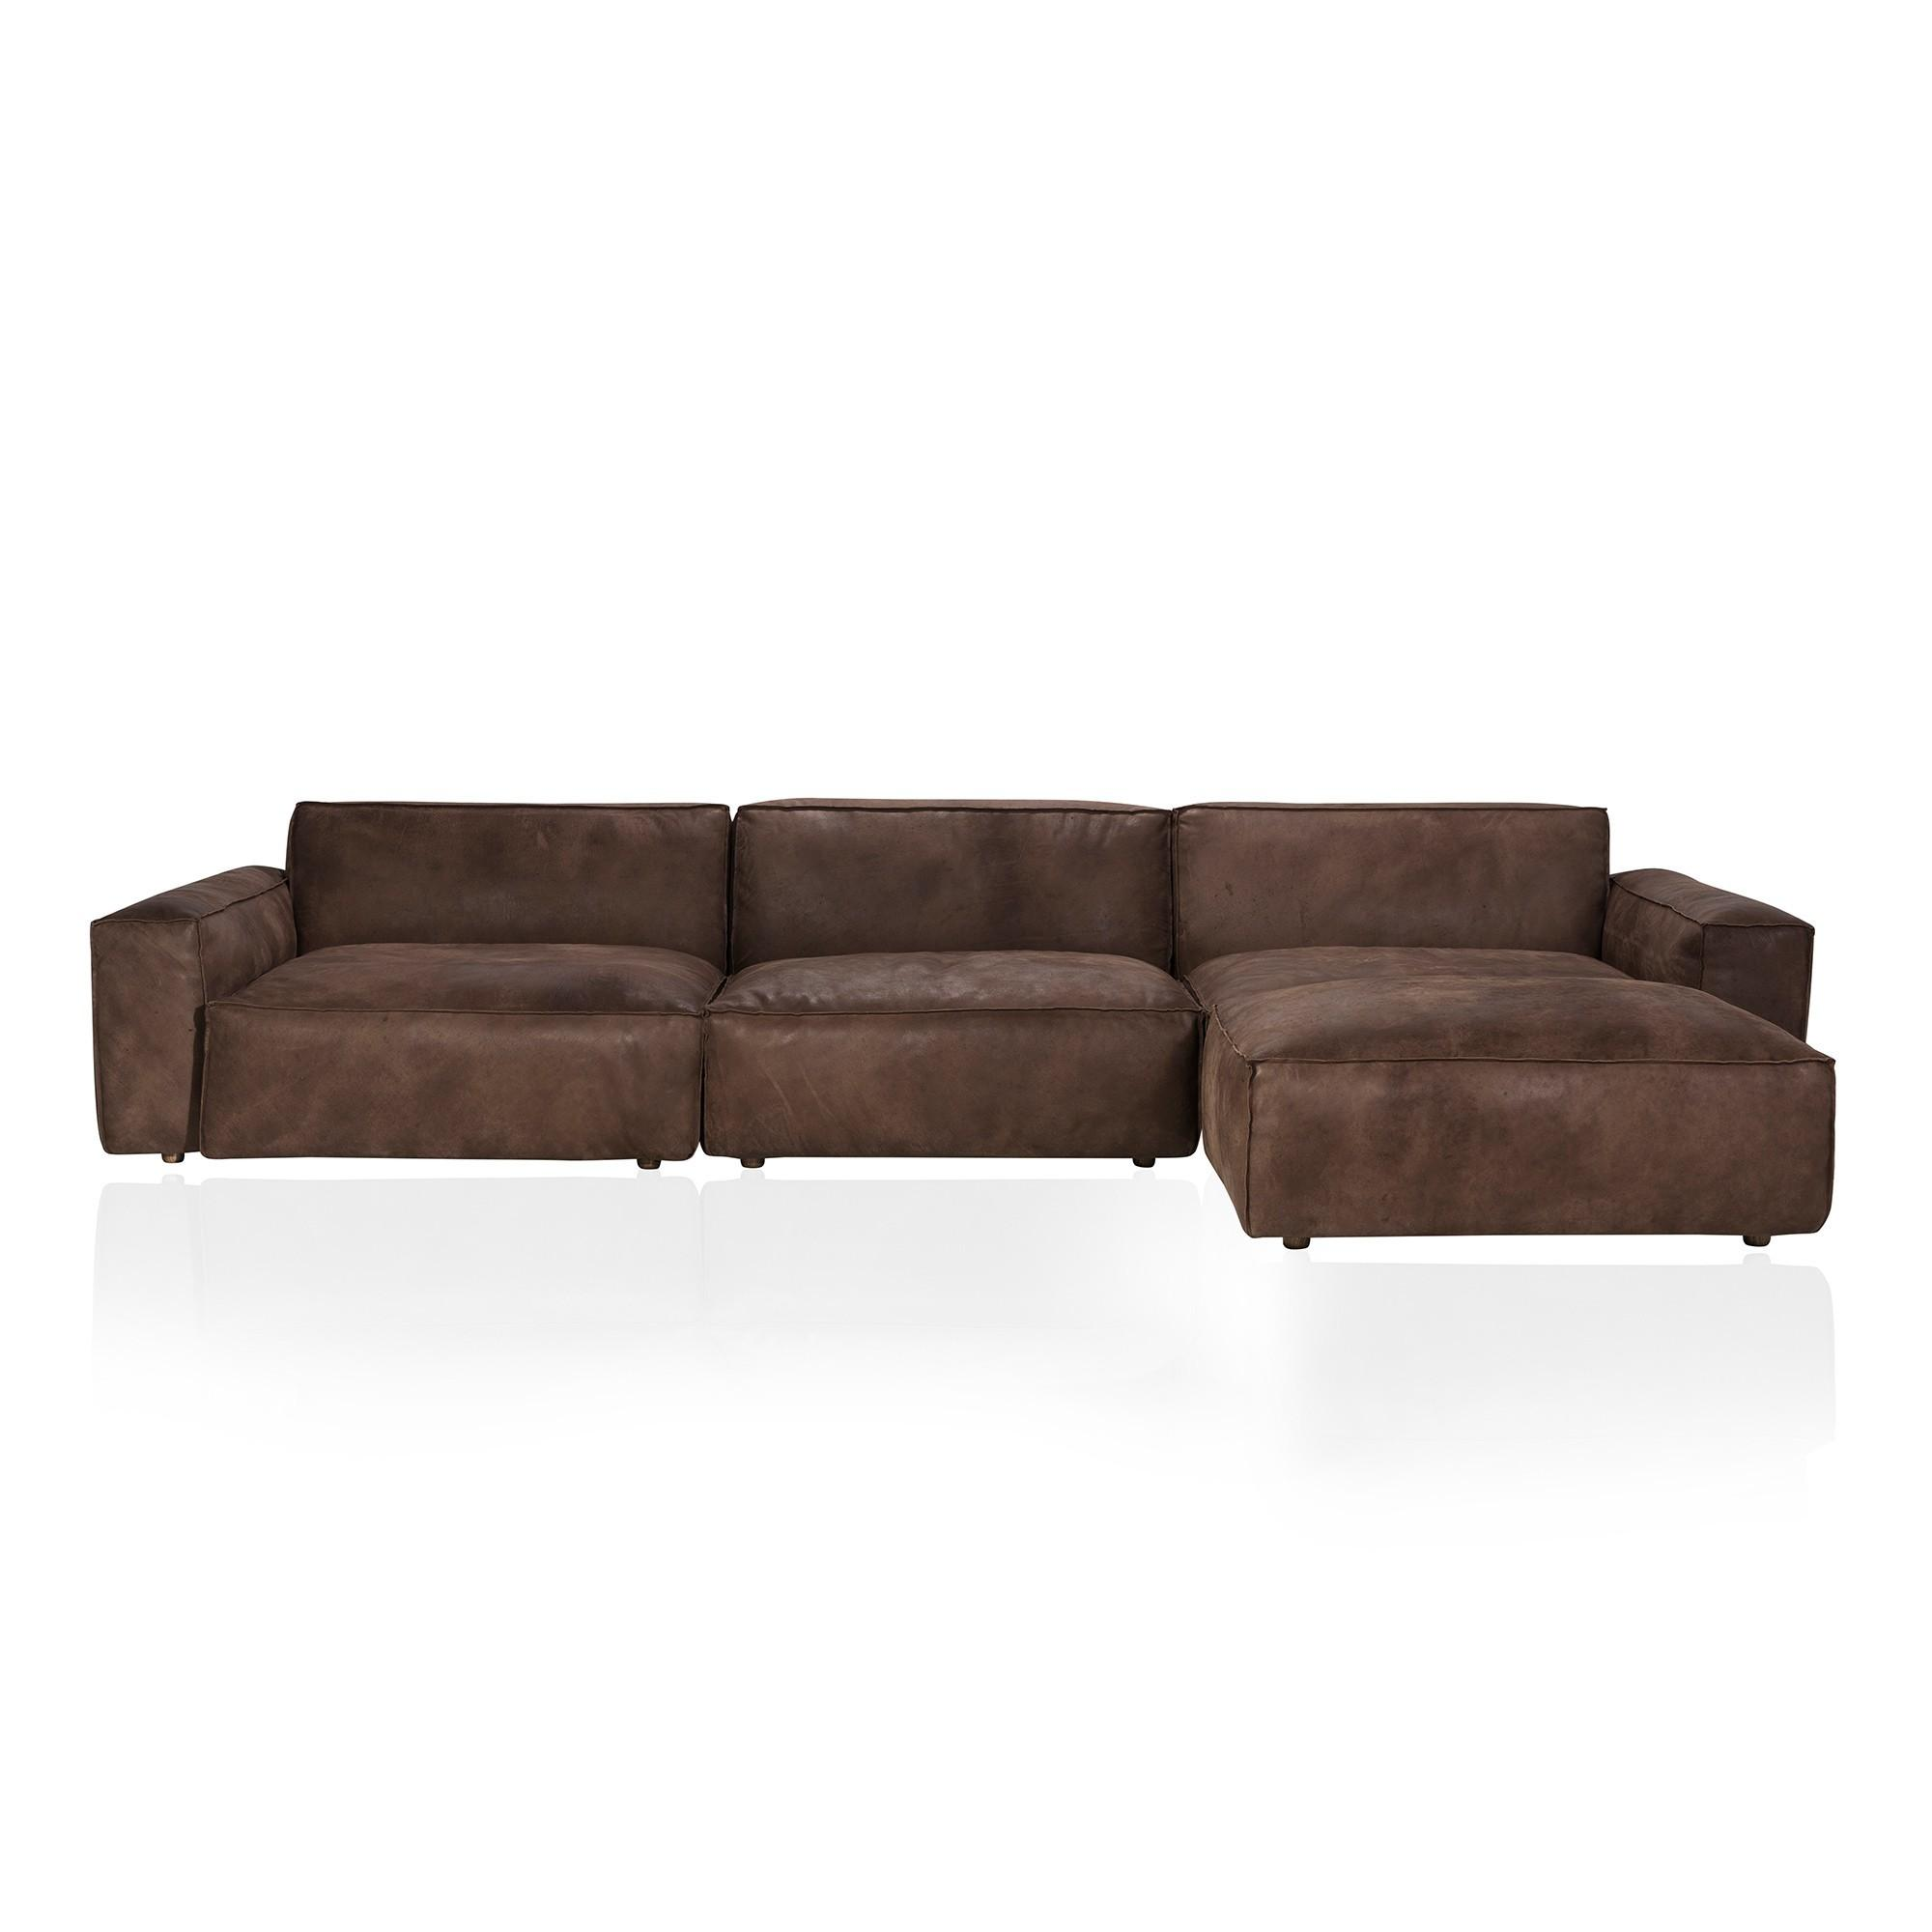 Modular Sectional Sofa Furniture Amazing